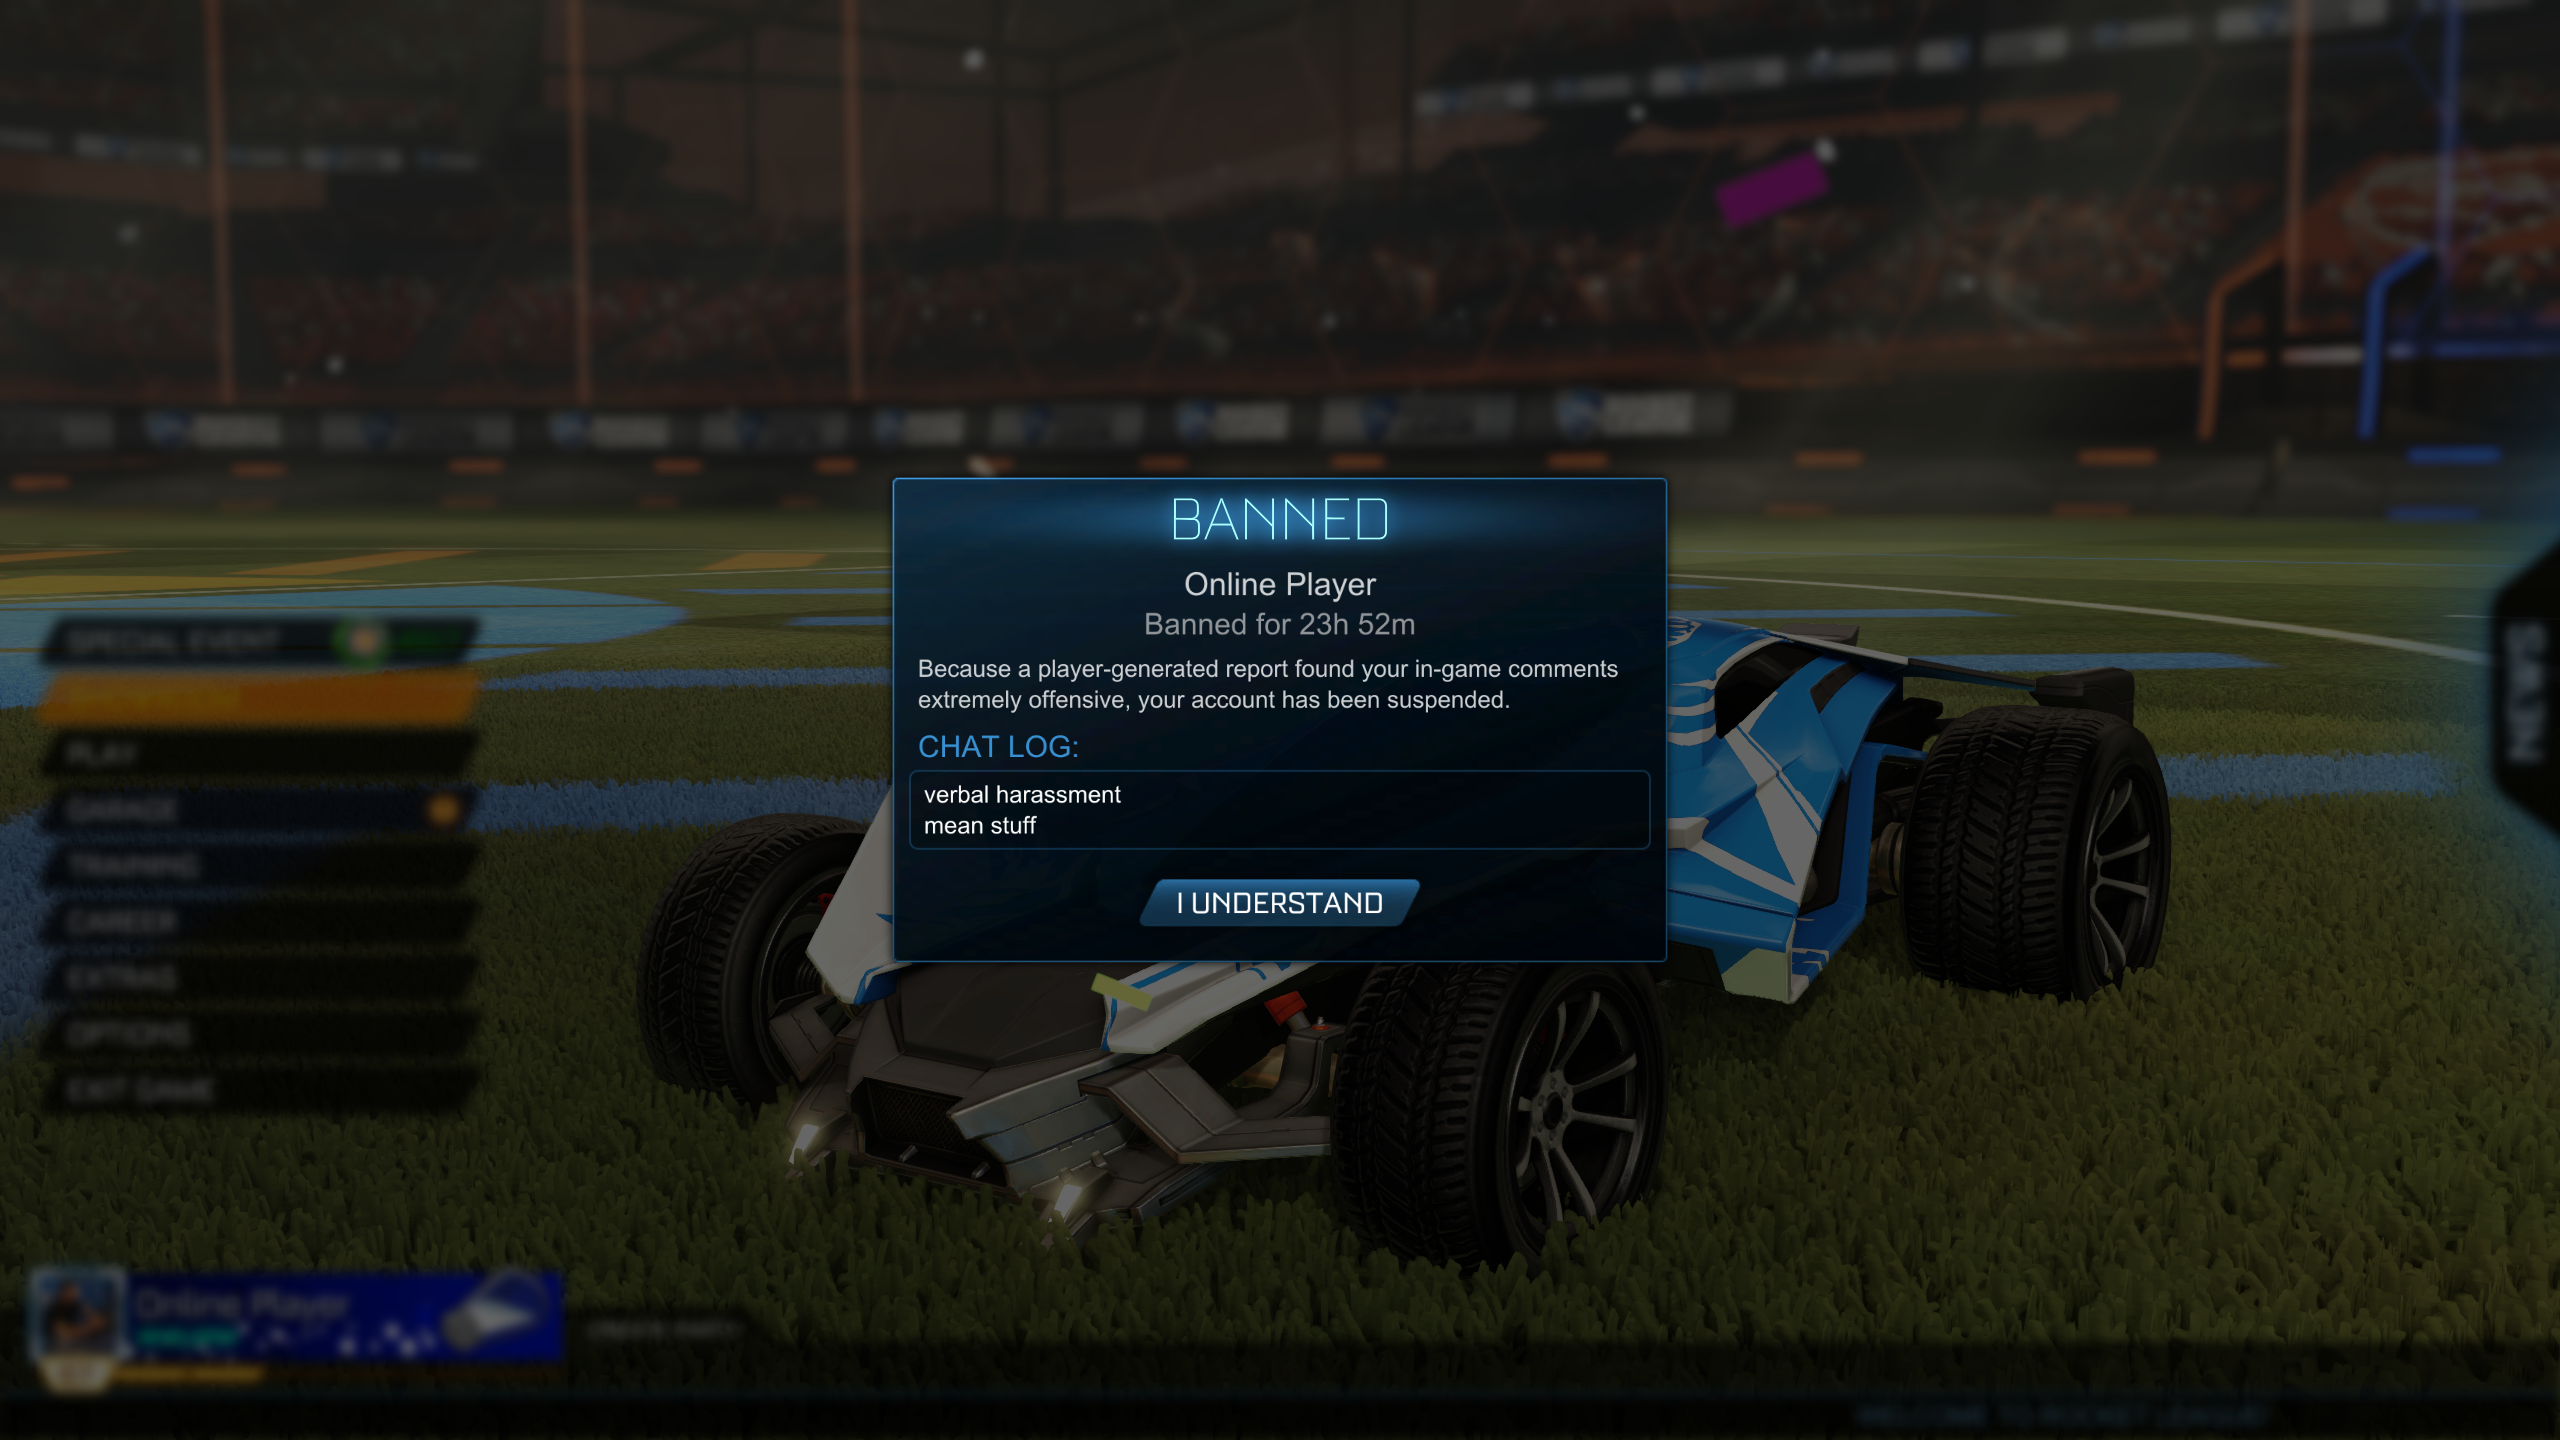 Banned from matchmaking for 9 minutes